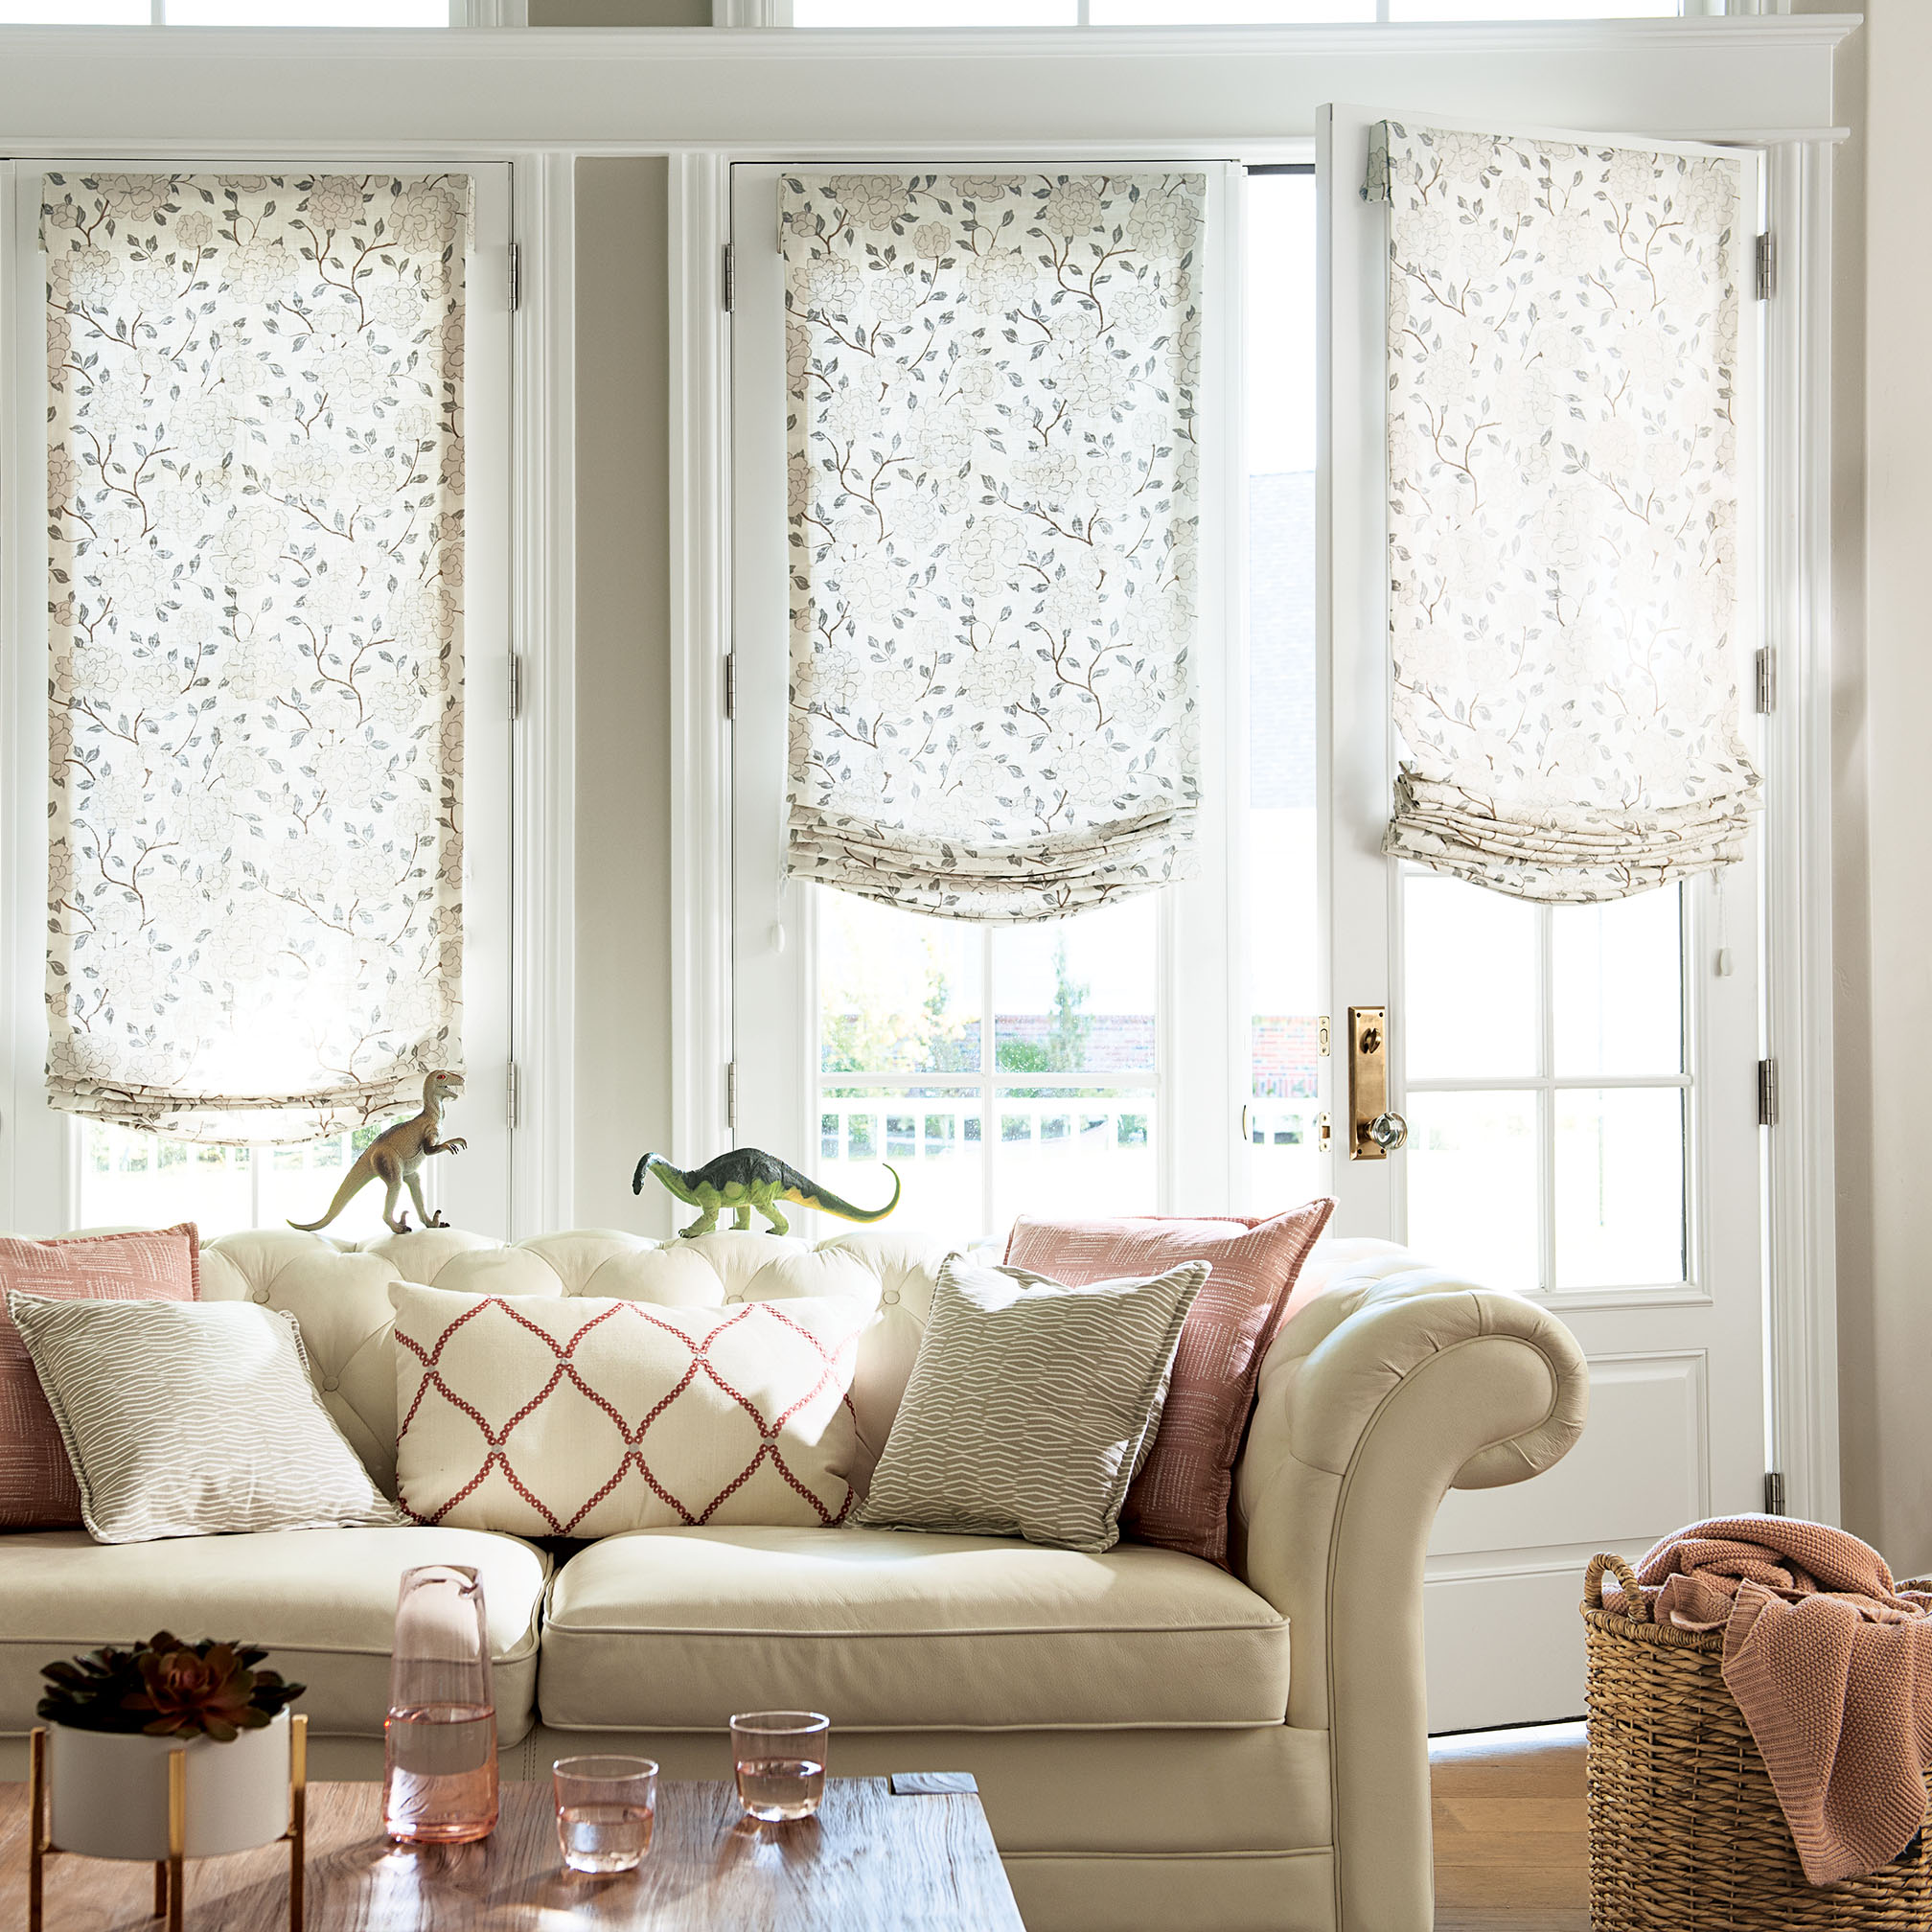 Relaxed Roman Fabric Shades